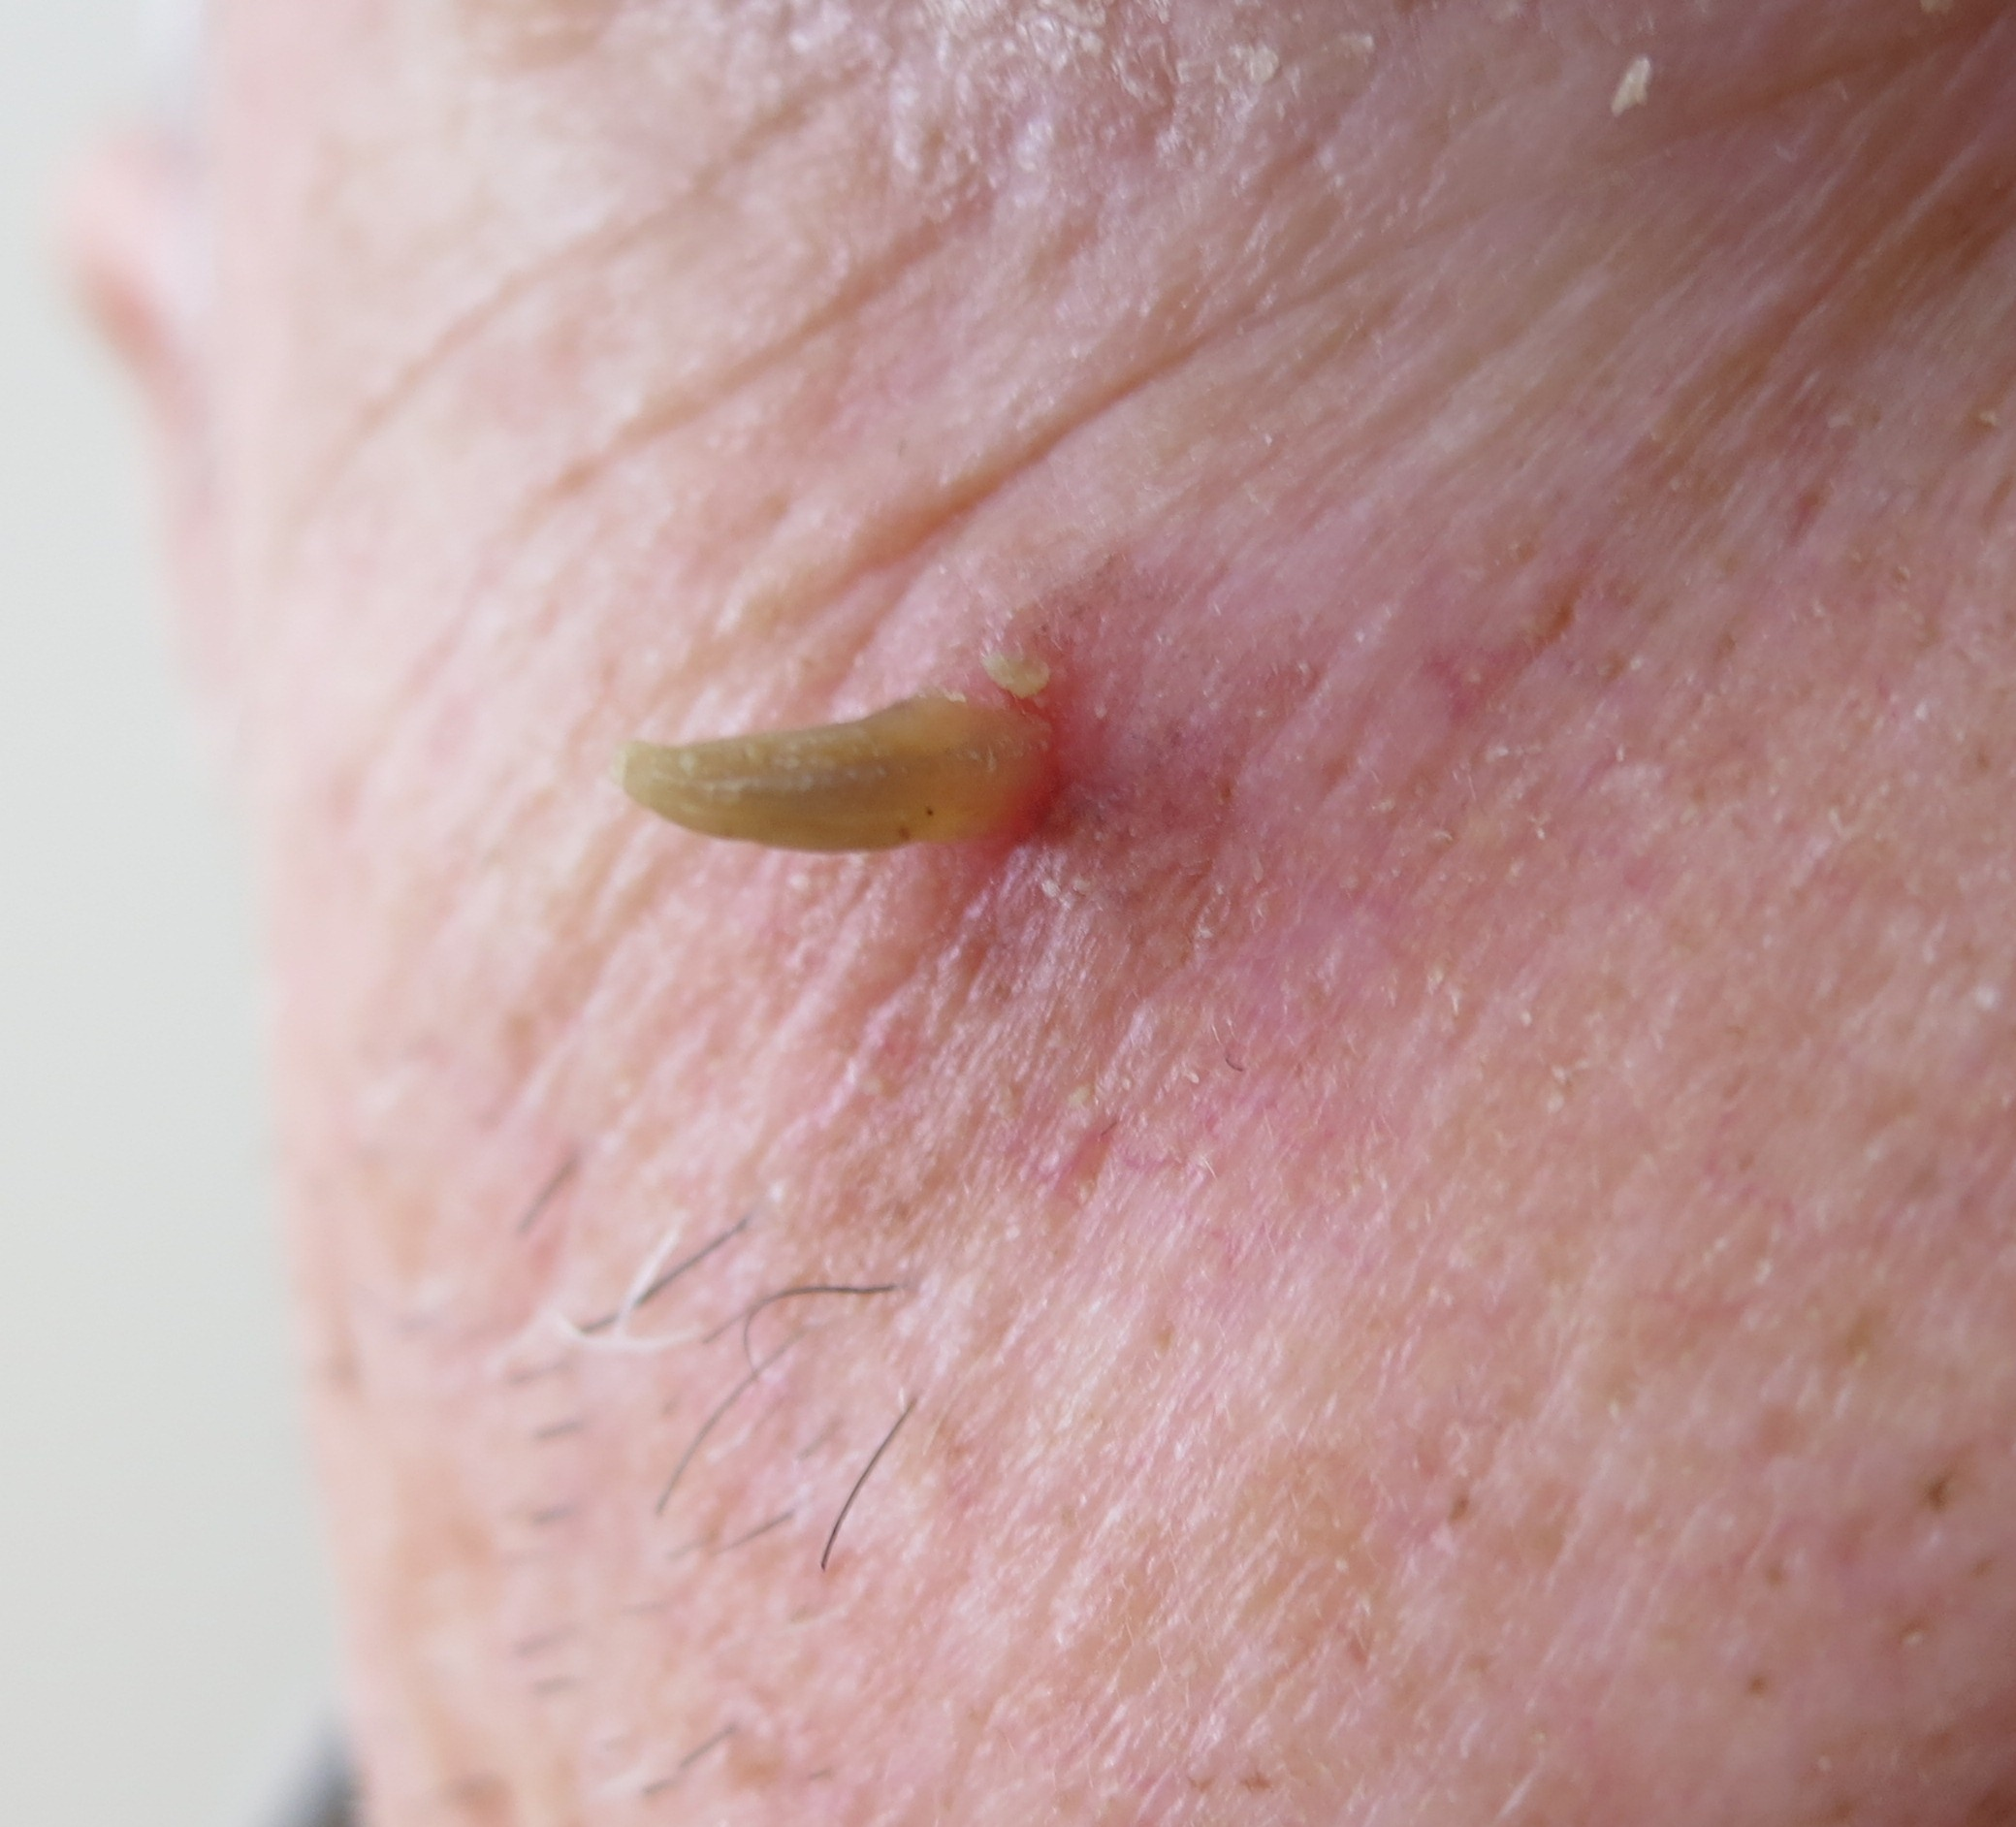 Actinic Keratosis Warning Signs and Images - SkinCancer.org